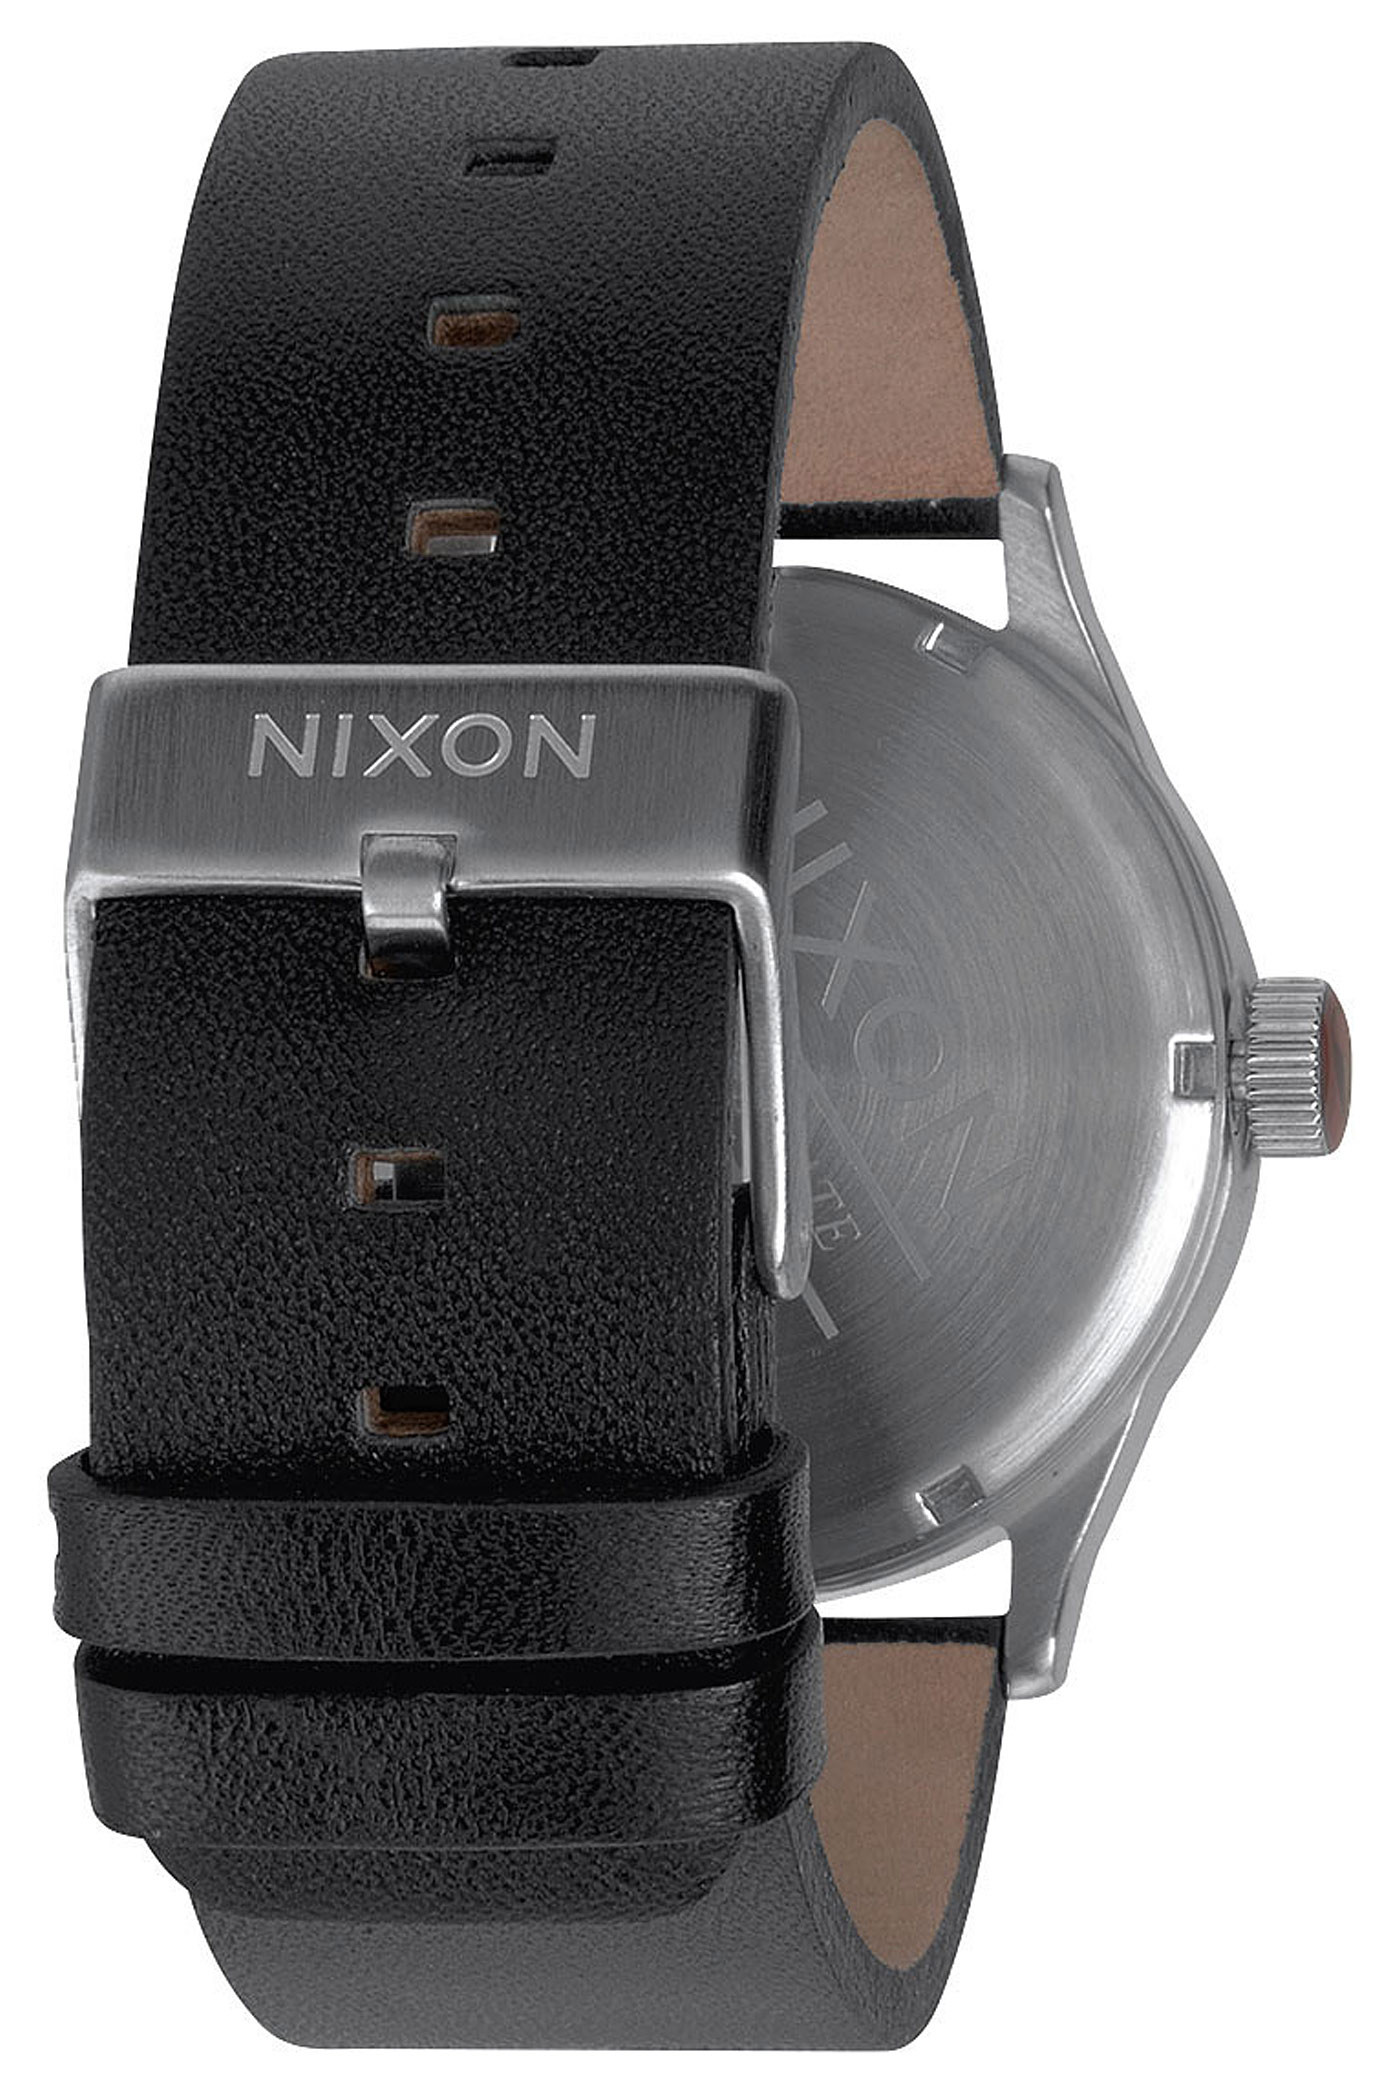 nixon chatrooms Live chat with nikon tech oct 29, 2003 chat free with a nikon tech support agent online live launches this week from http://support.